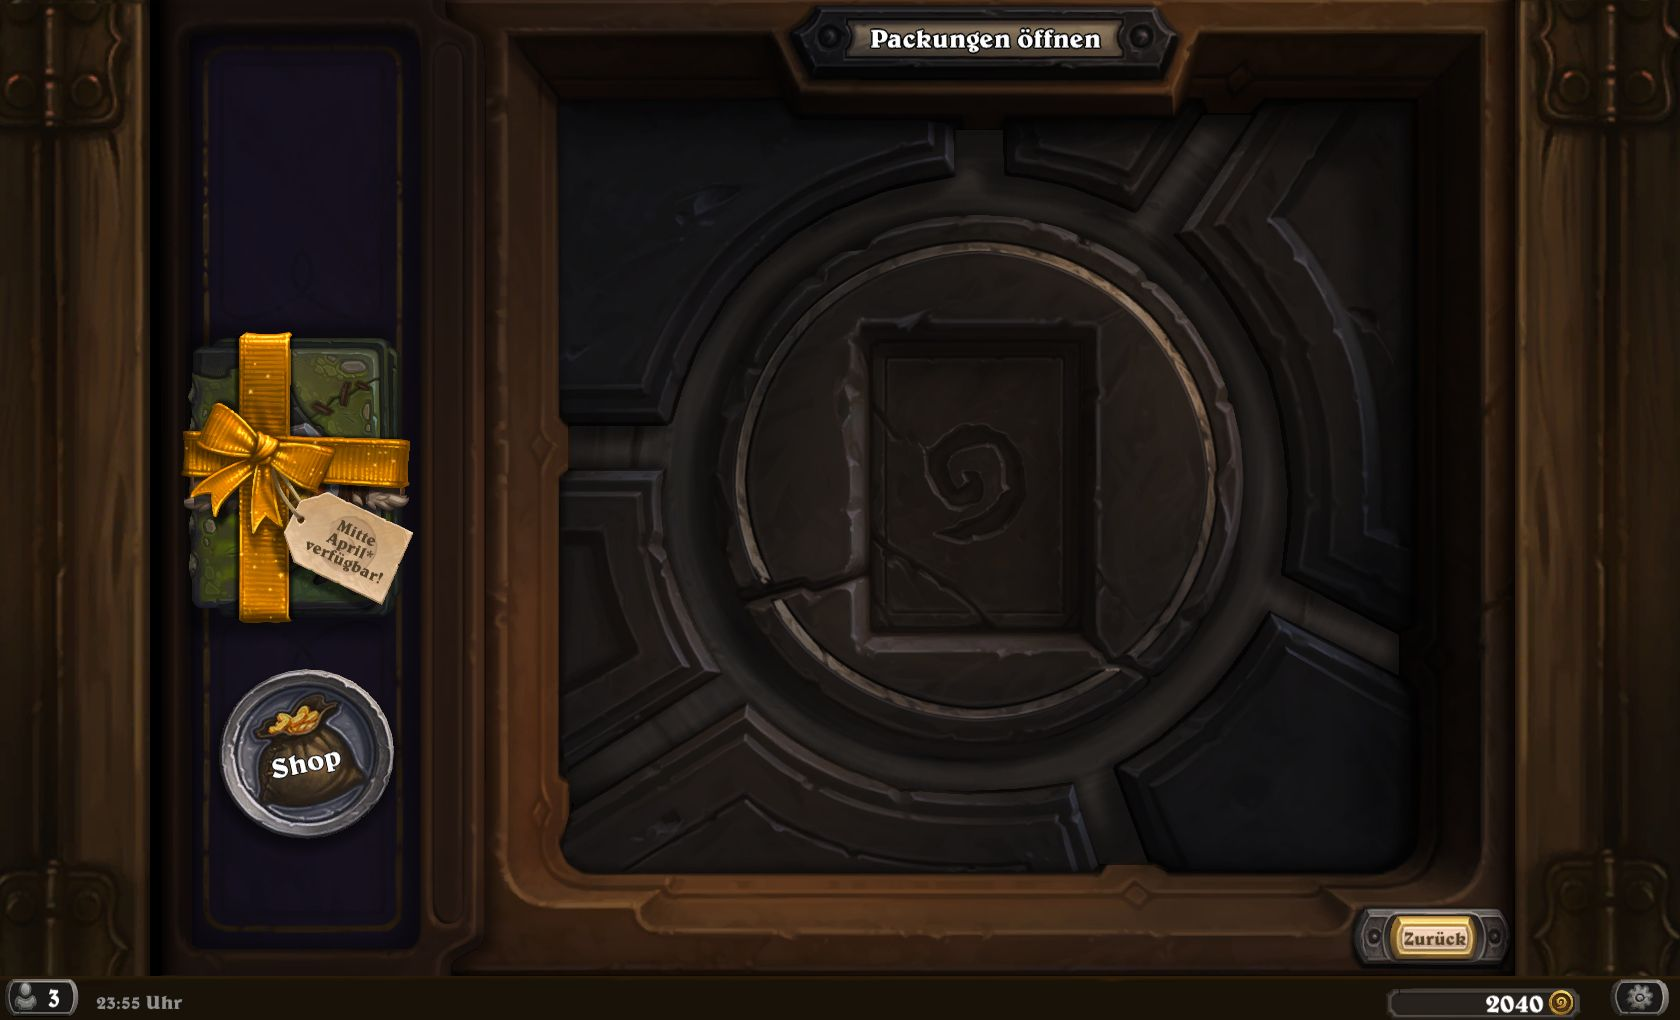 hearthstone wann ist der release von un 39 goro 1 packung. Black Bedroom Furniture Sets. Home Design Ideas